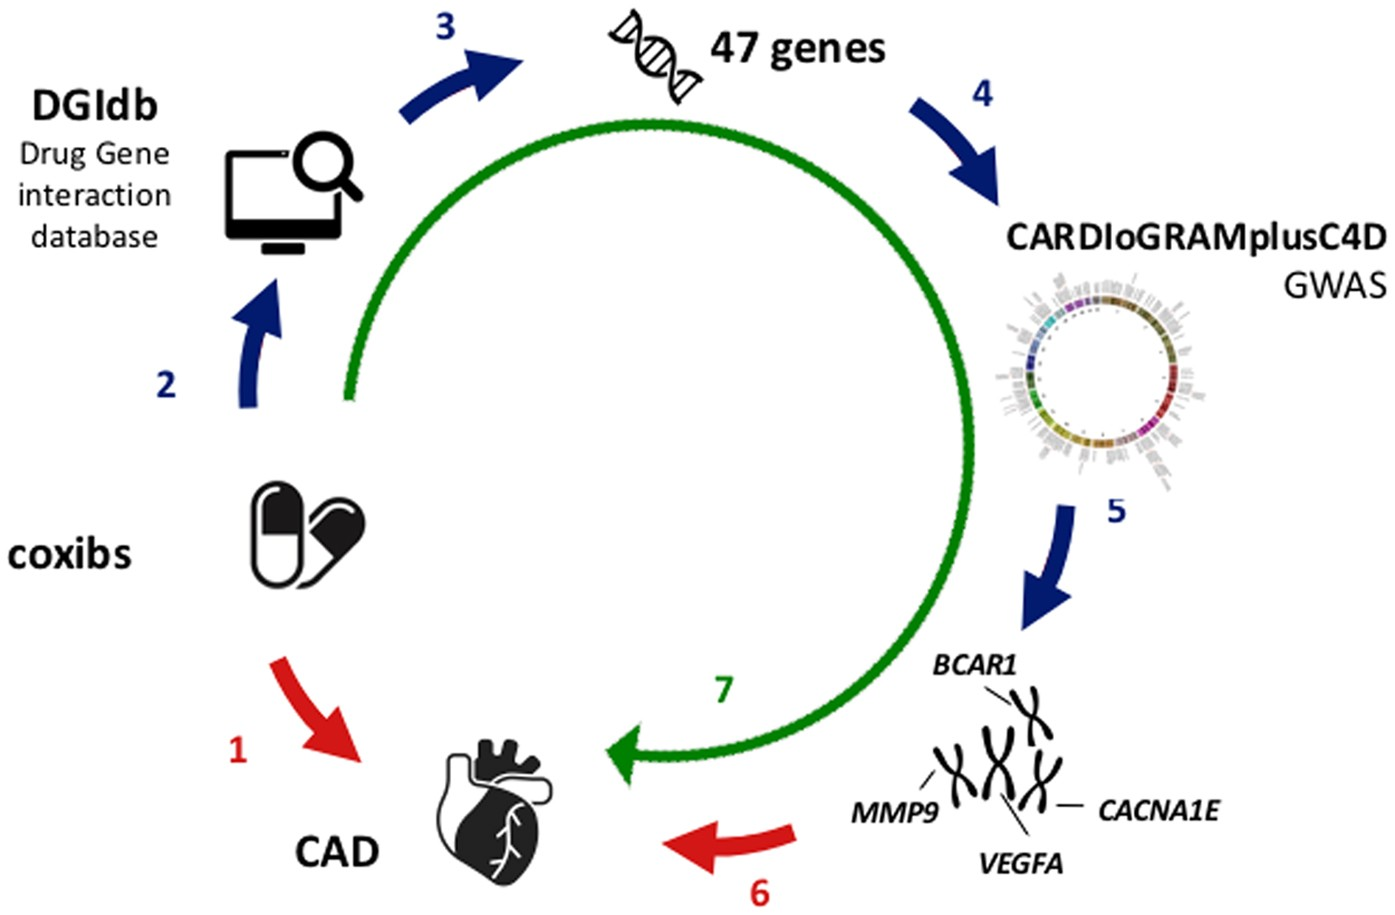 A genomic exploration identifies mechanisms that may explain a genomic exploration identifies mechanisms that may explain adverse cardiovascular effects of cox 2 inhibitors scientific reports pooptronica Choice Image